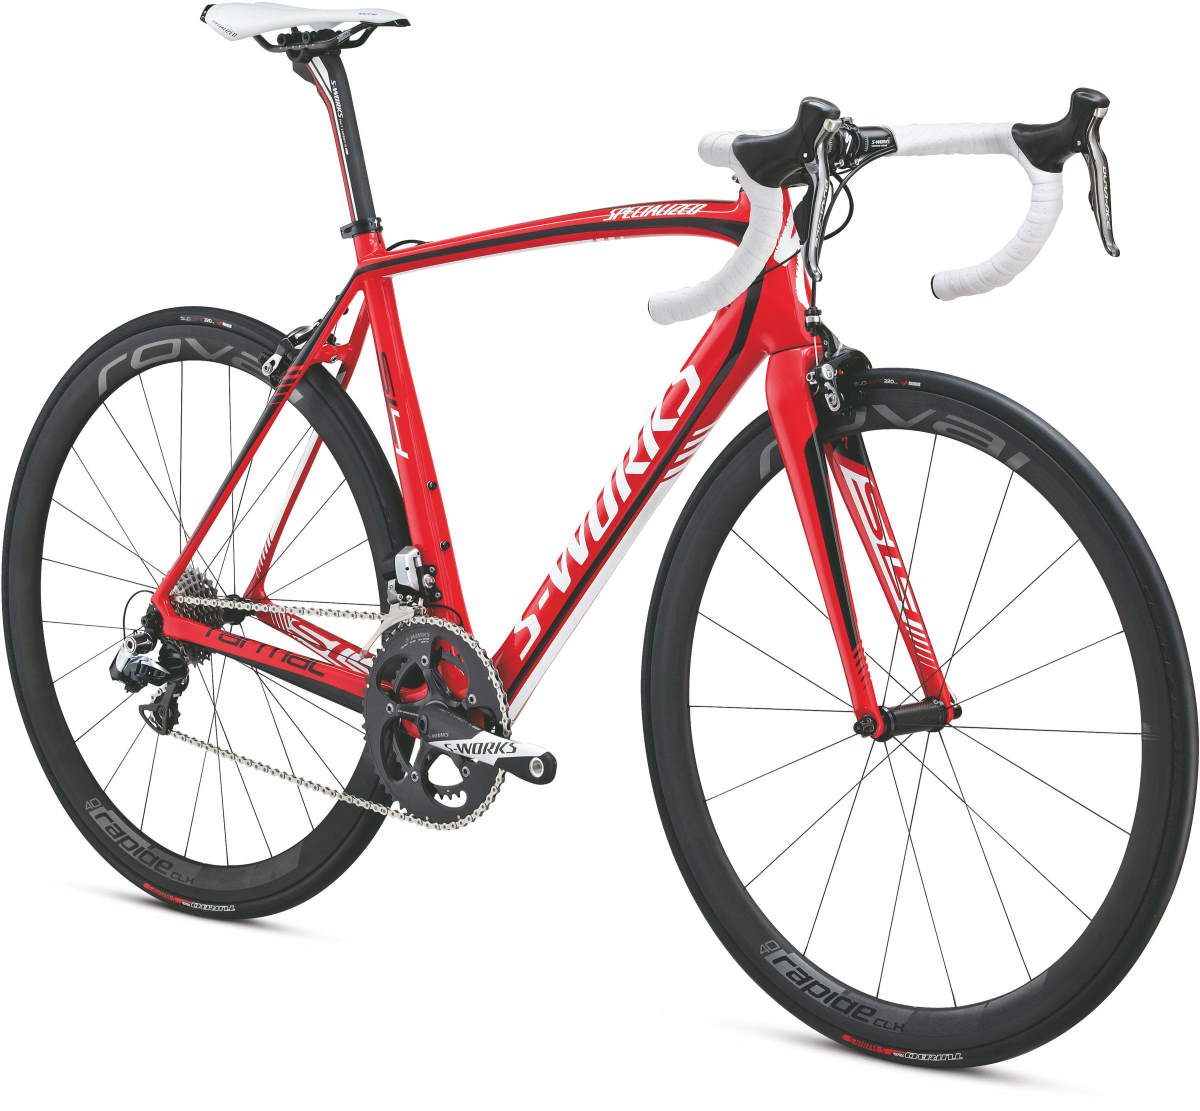 Specialized S-Works Tarmac 2013 SL4 Di2